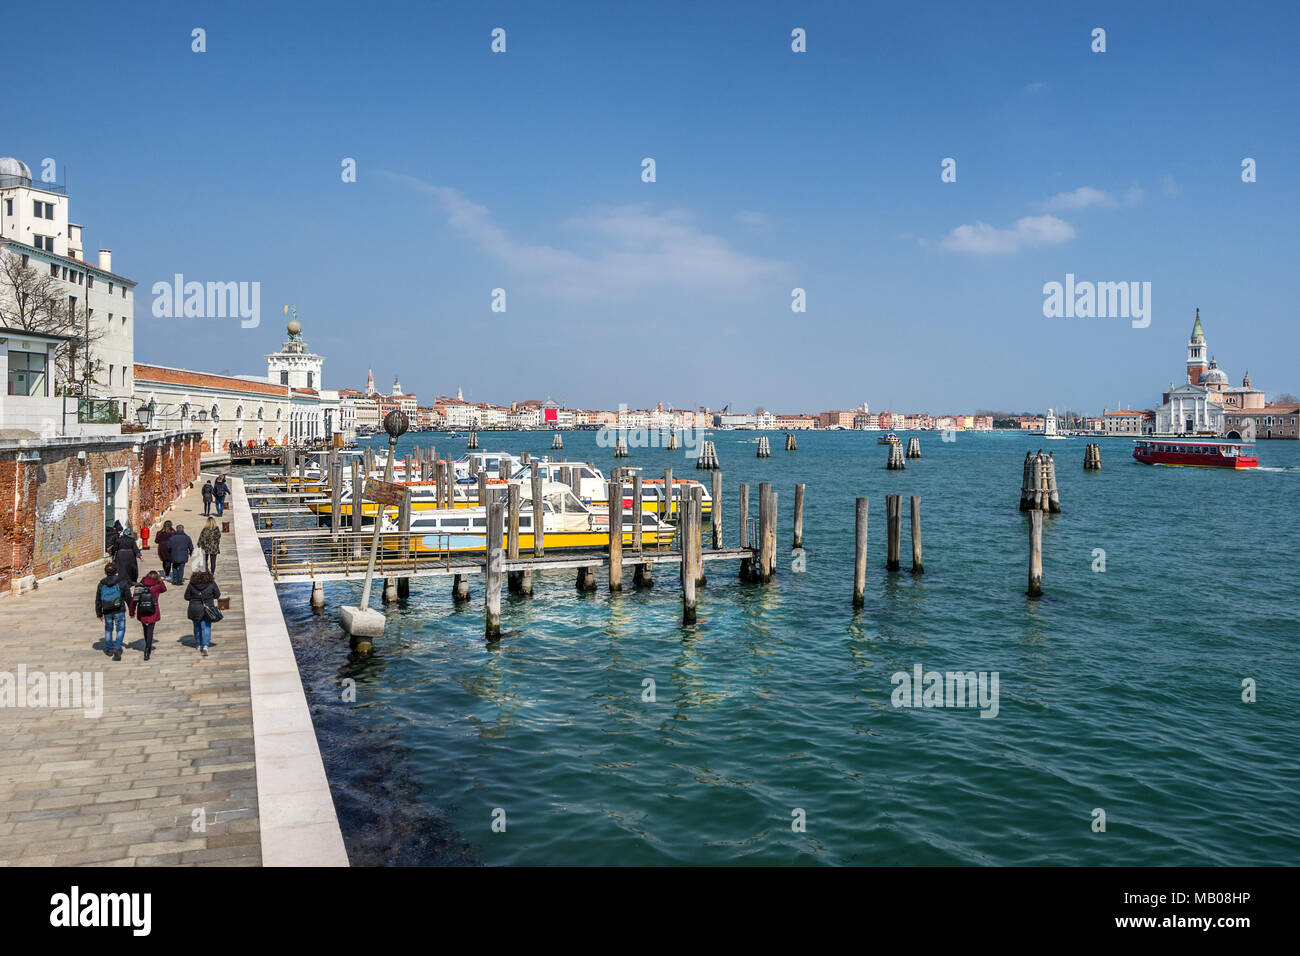 Waterbus platform at Zattere in Venice - Stock Image